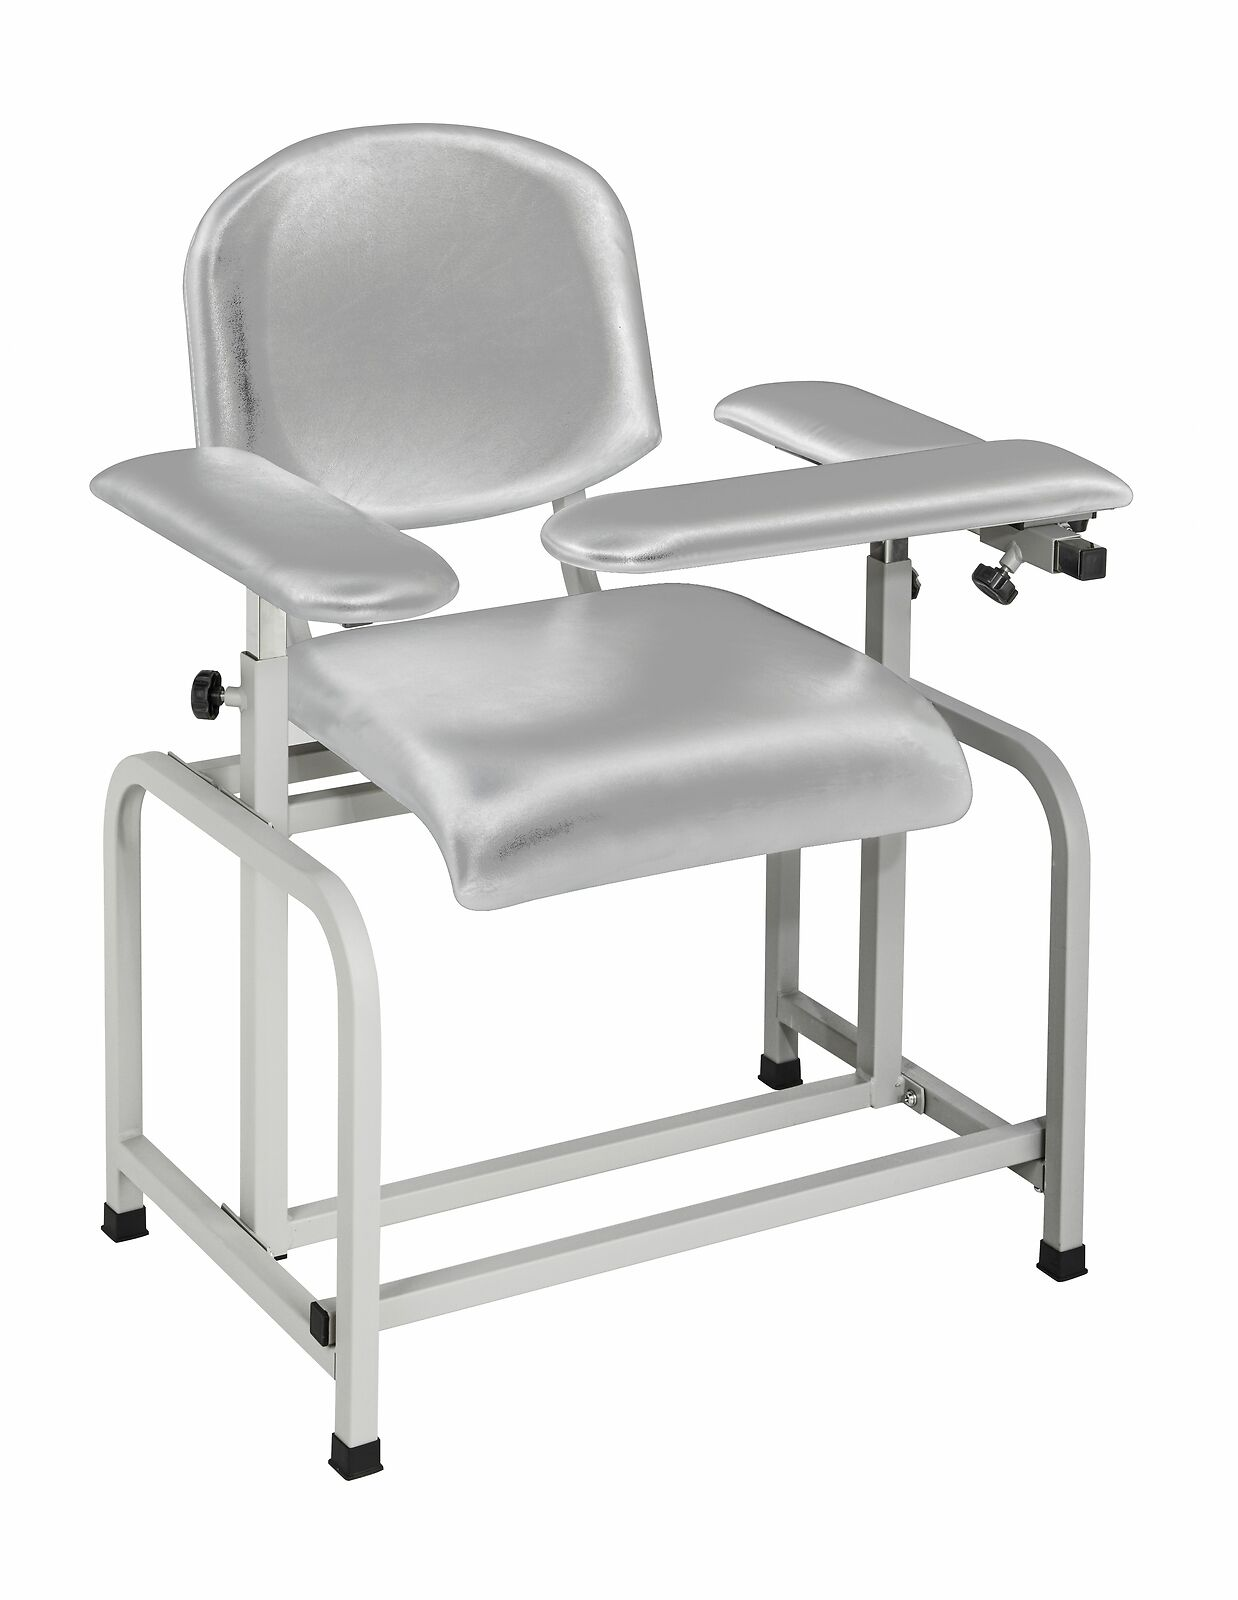 blood draw chair european touch pedicure chairs for sale adirmed 17 3 in padded phlebotomy ebay